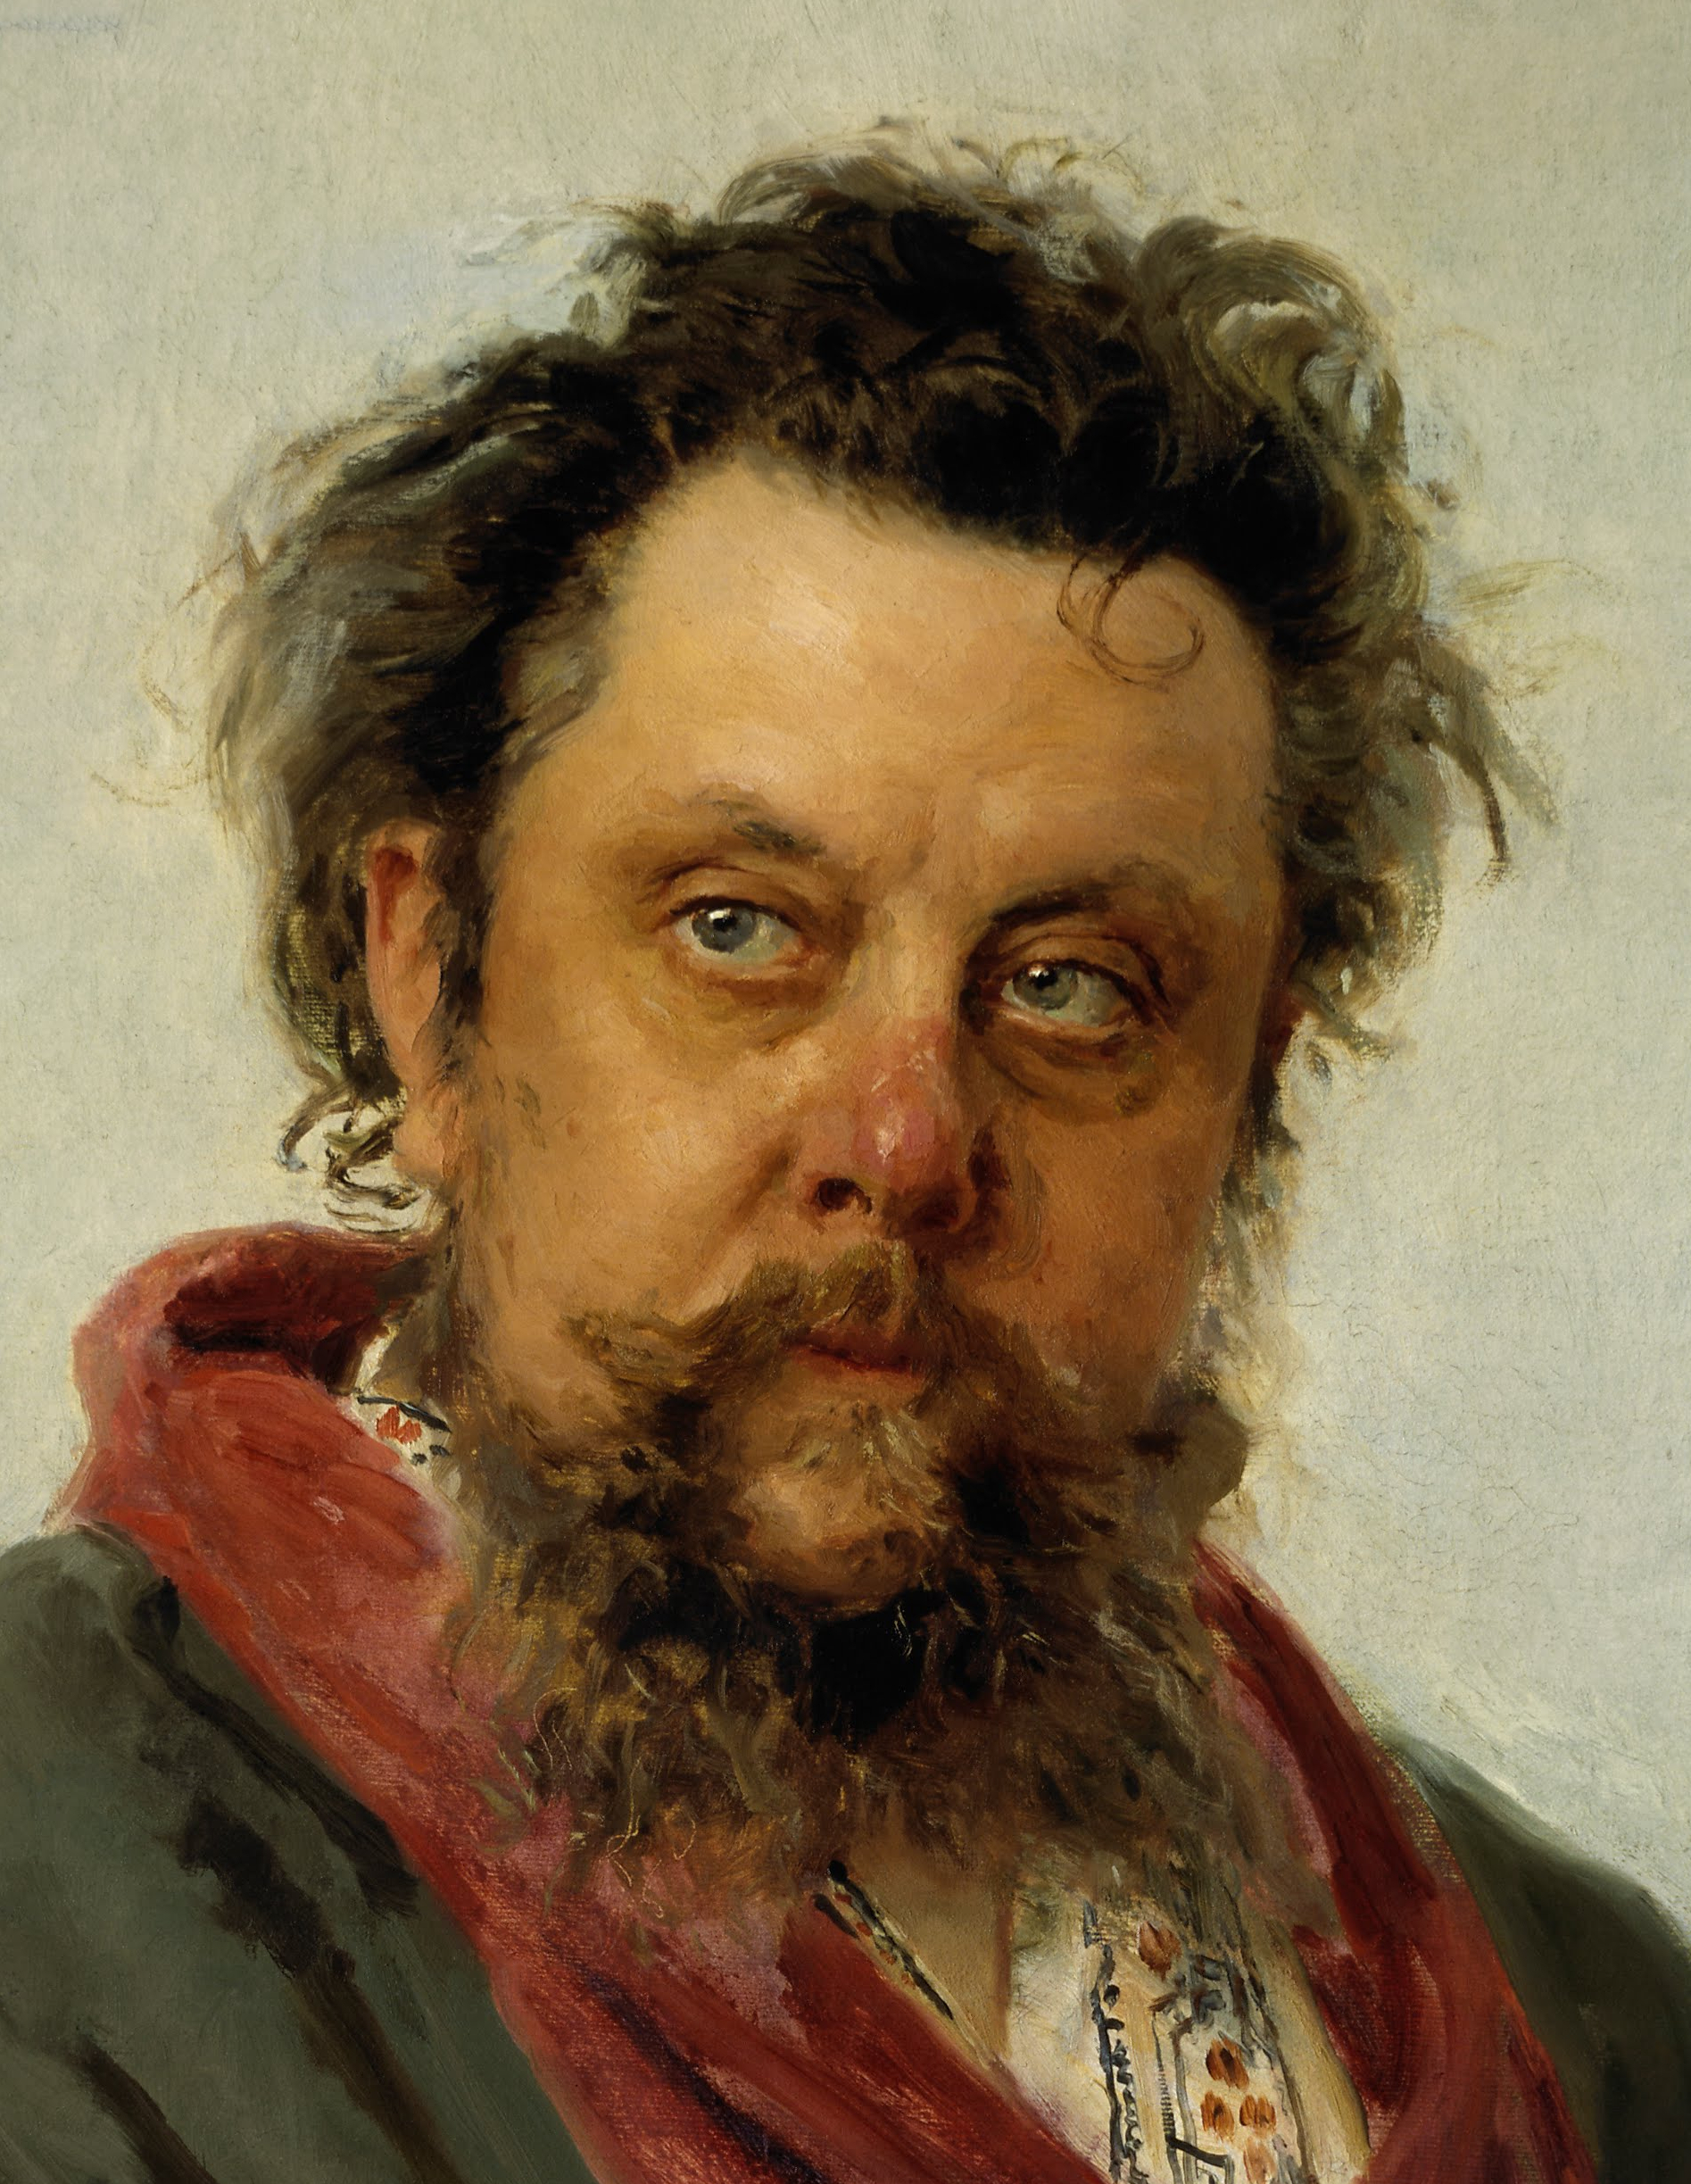 an essay on the life and works of courbet the father of realism Realism became dominant in art, and realist artists sought to show everyday life of regular people & the natural world with photographic realism gustave courbet french painter who was the.